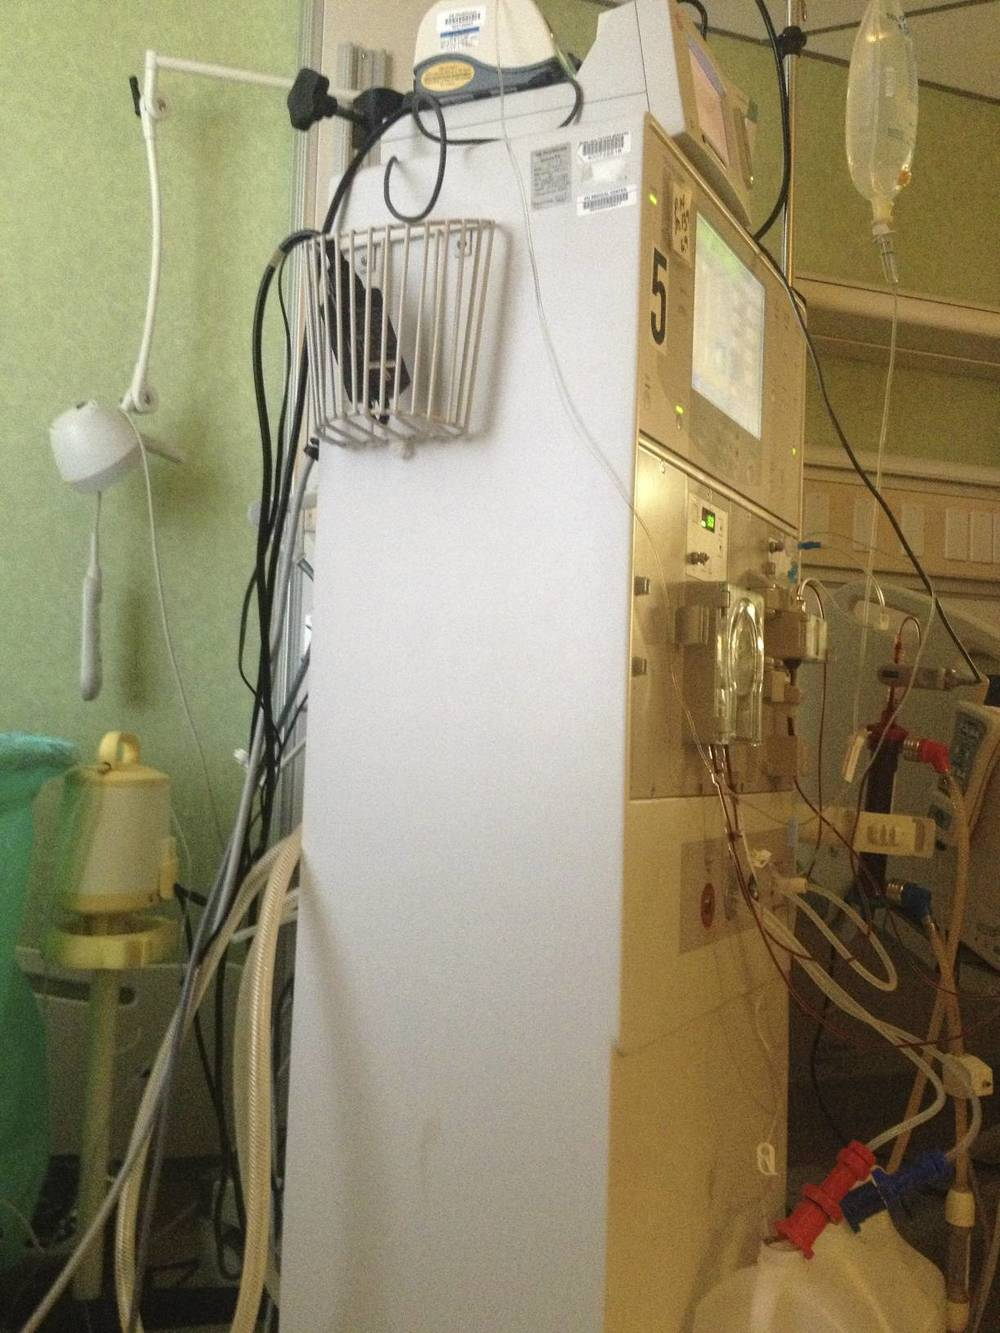 New dialysis machine works 100 times faster.